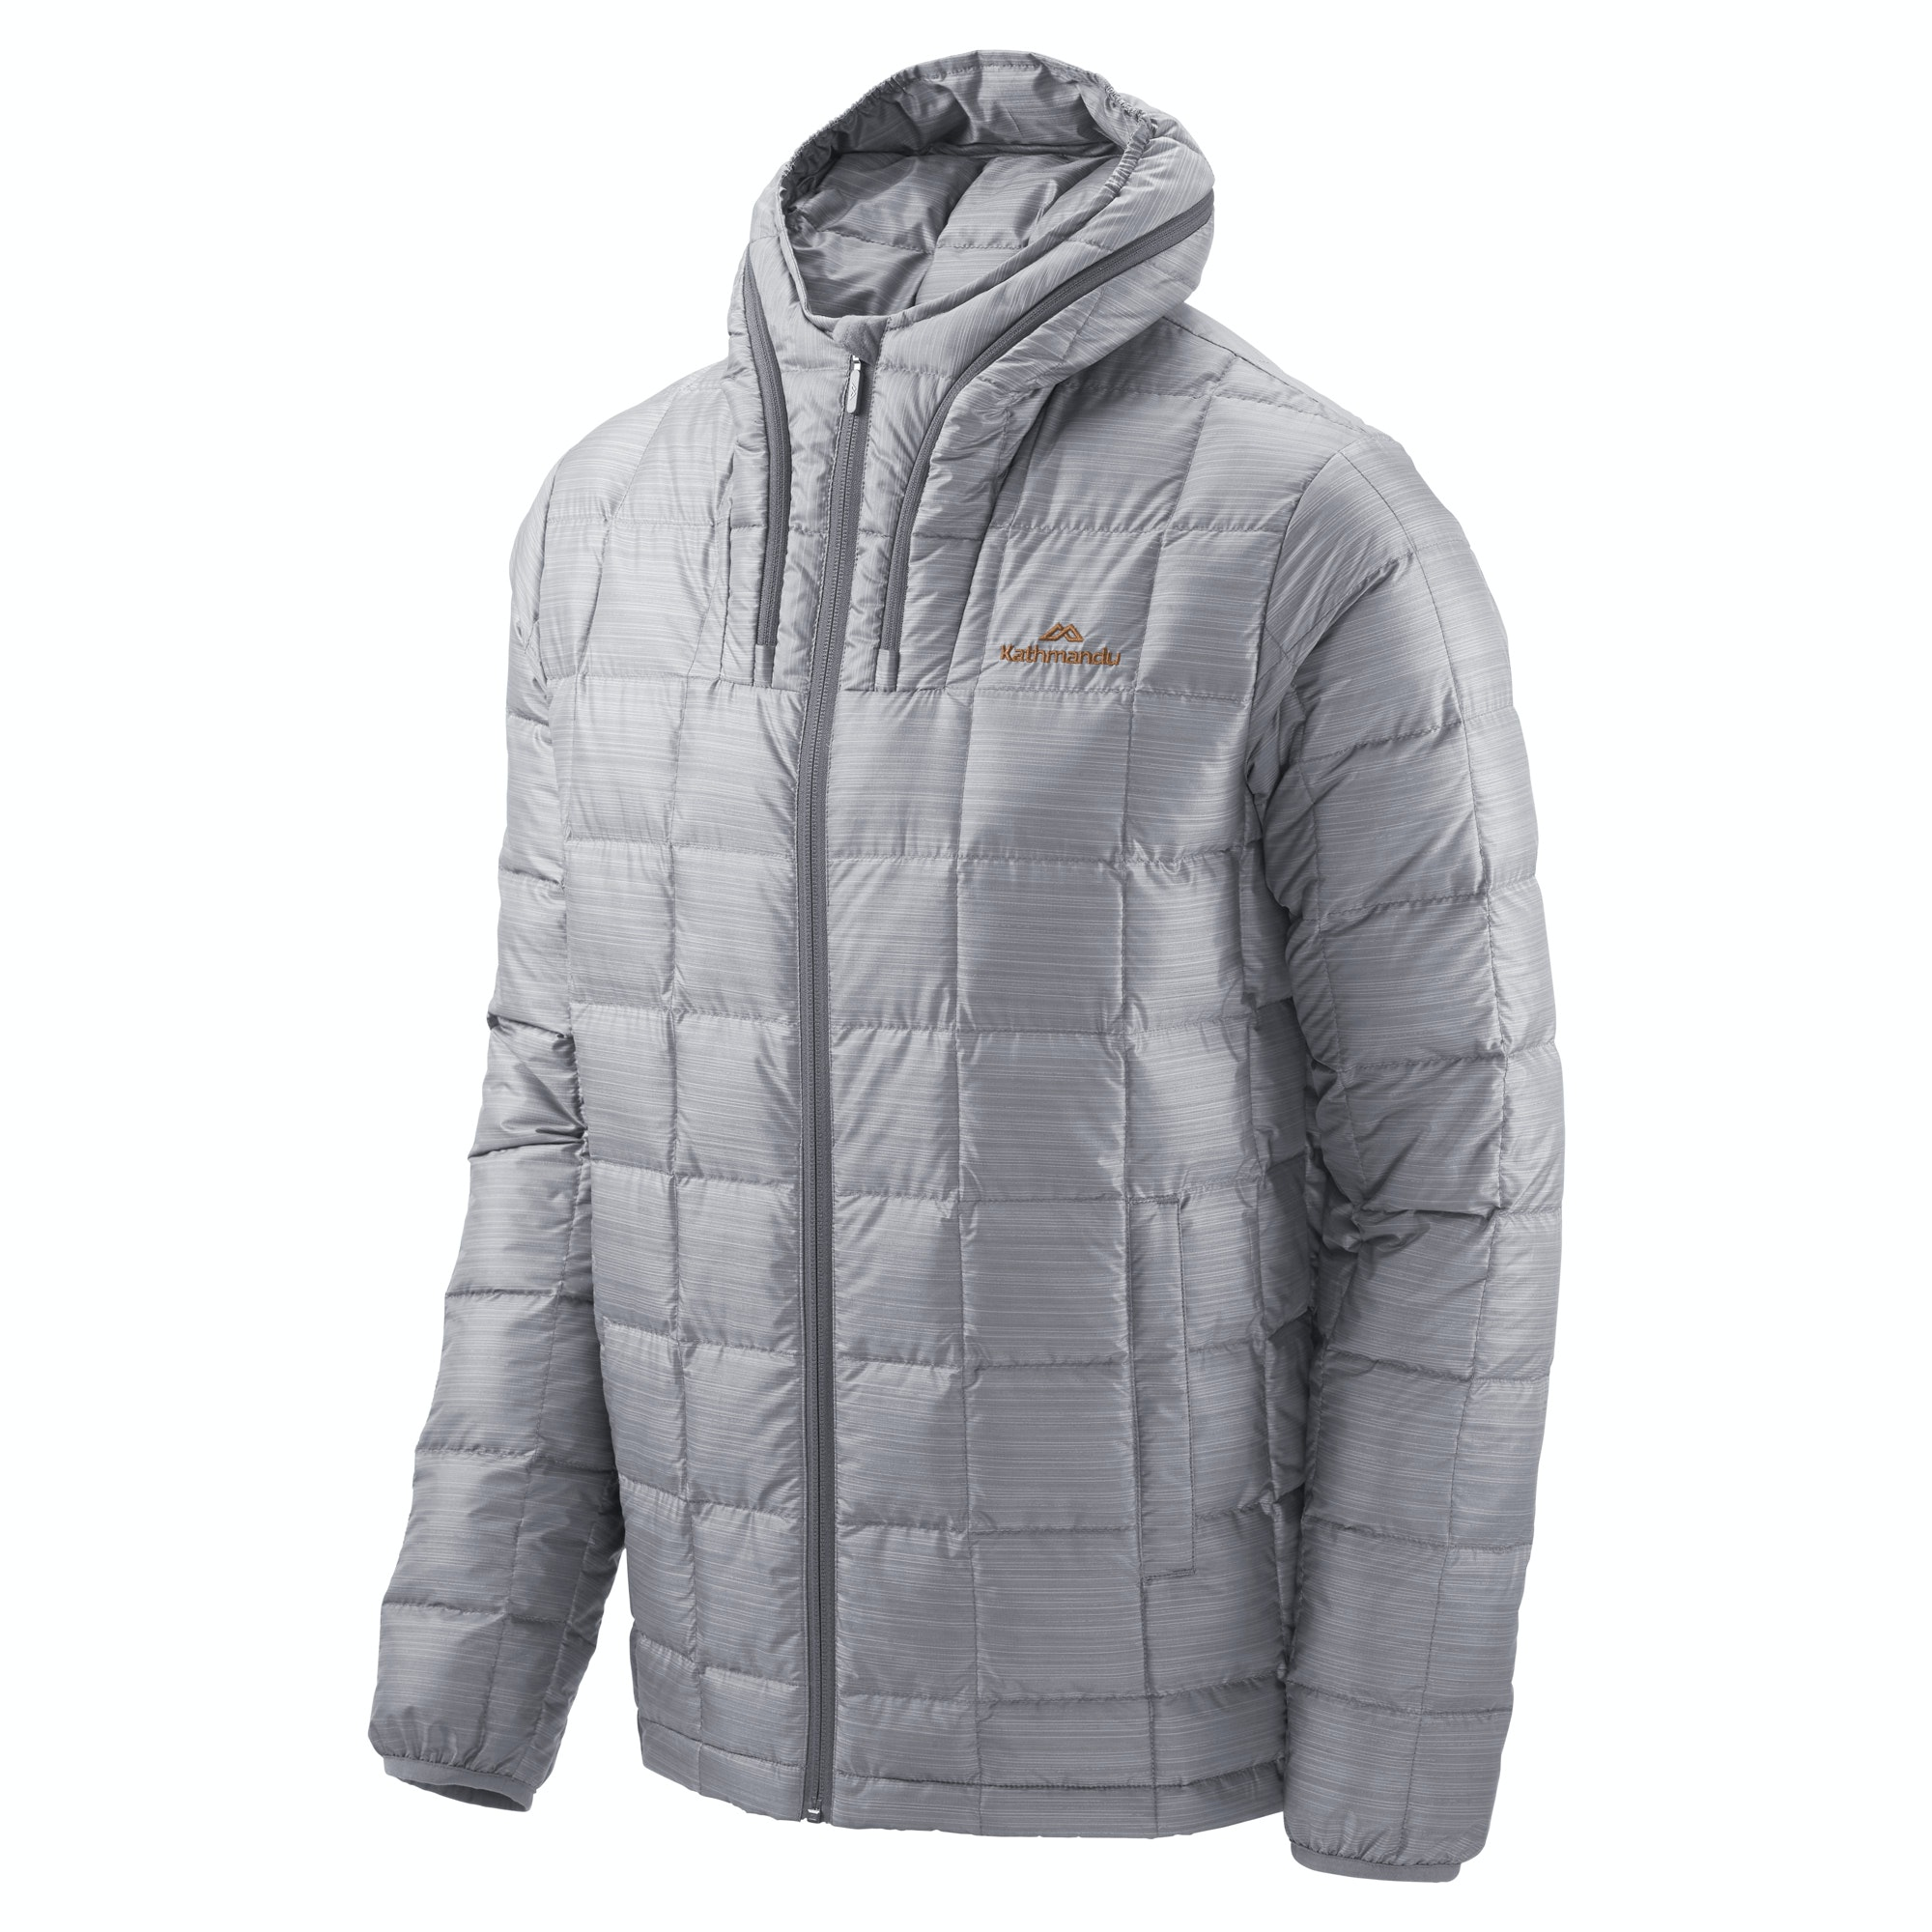 Down Travel Jacket